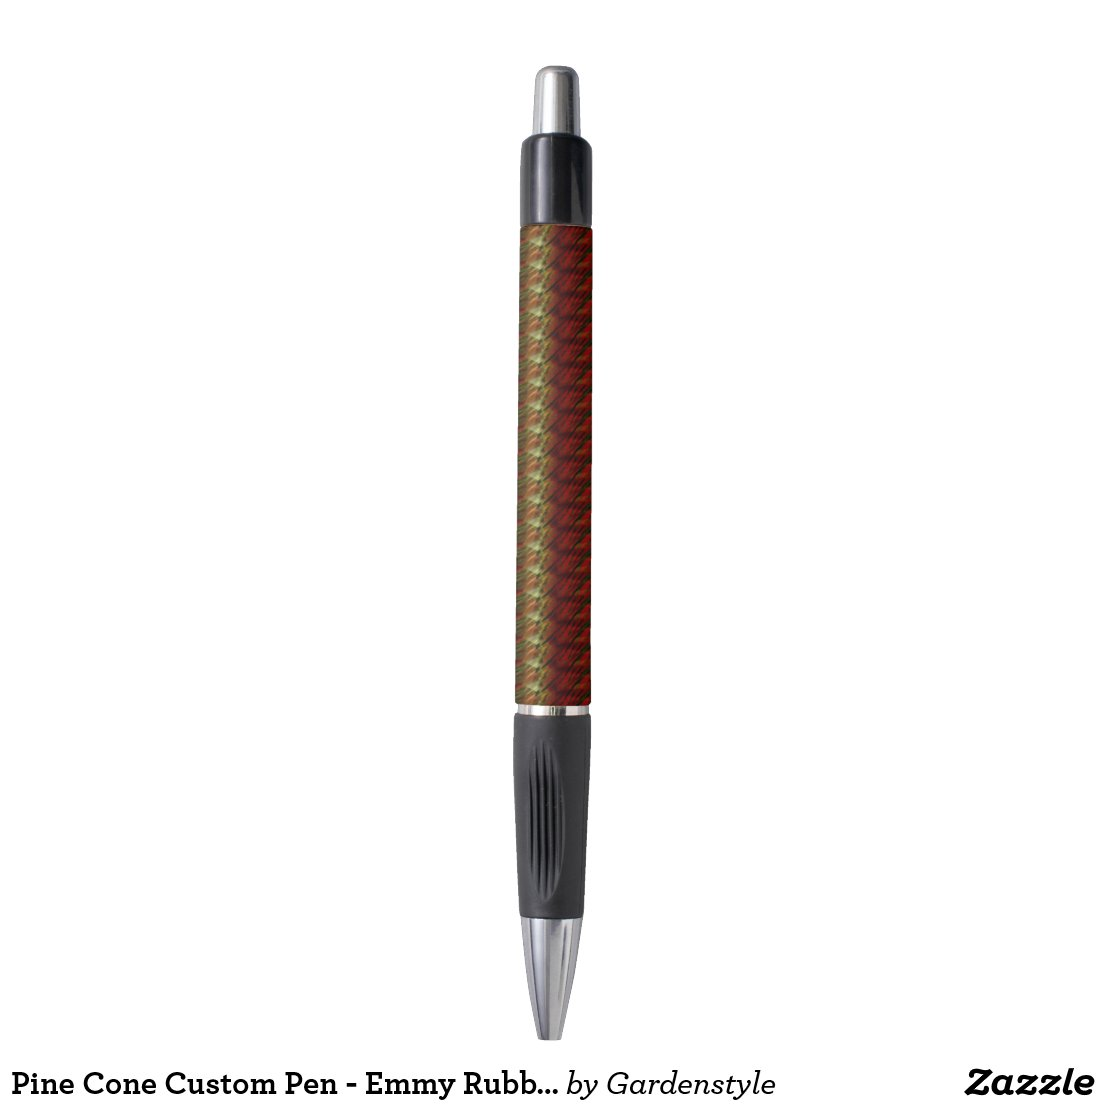 Pine Cone Custom Pen - Emmy Rubber Grip Pen